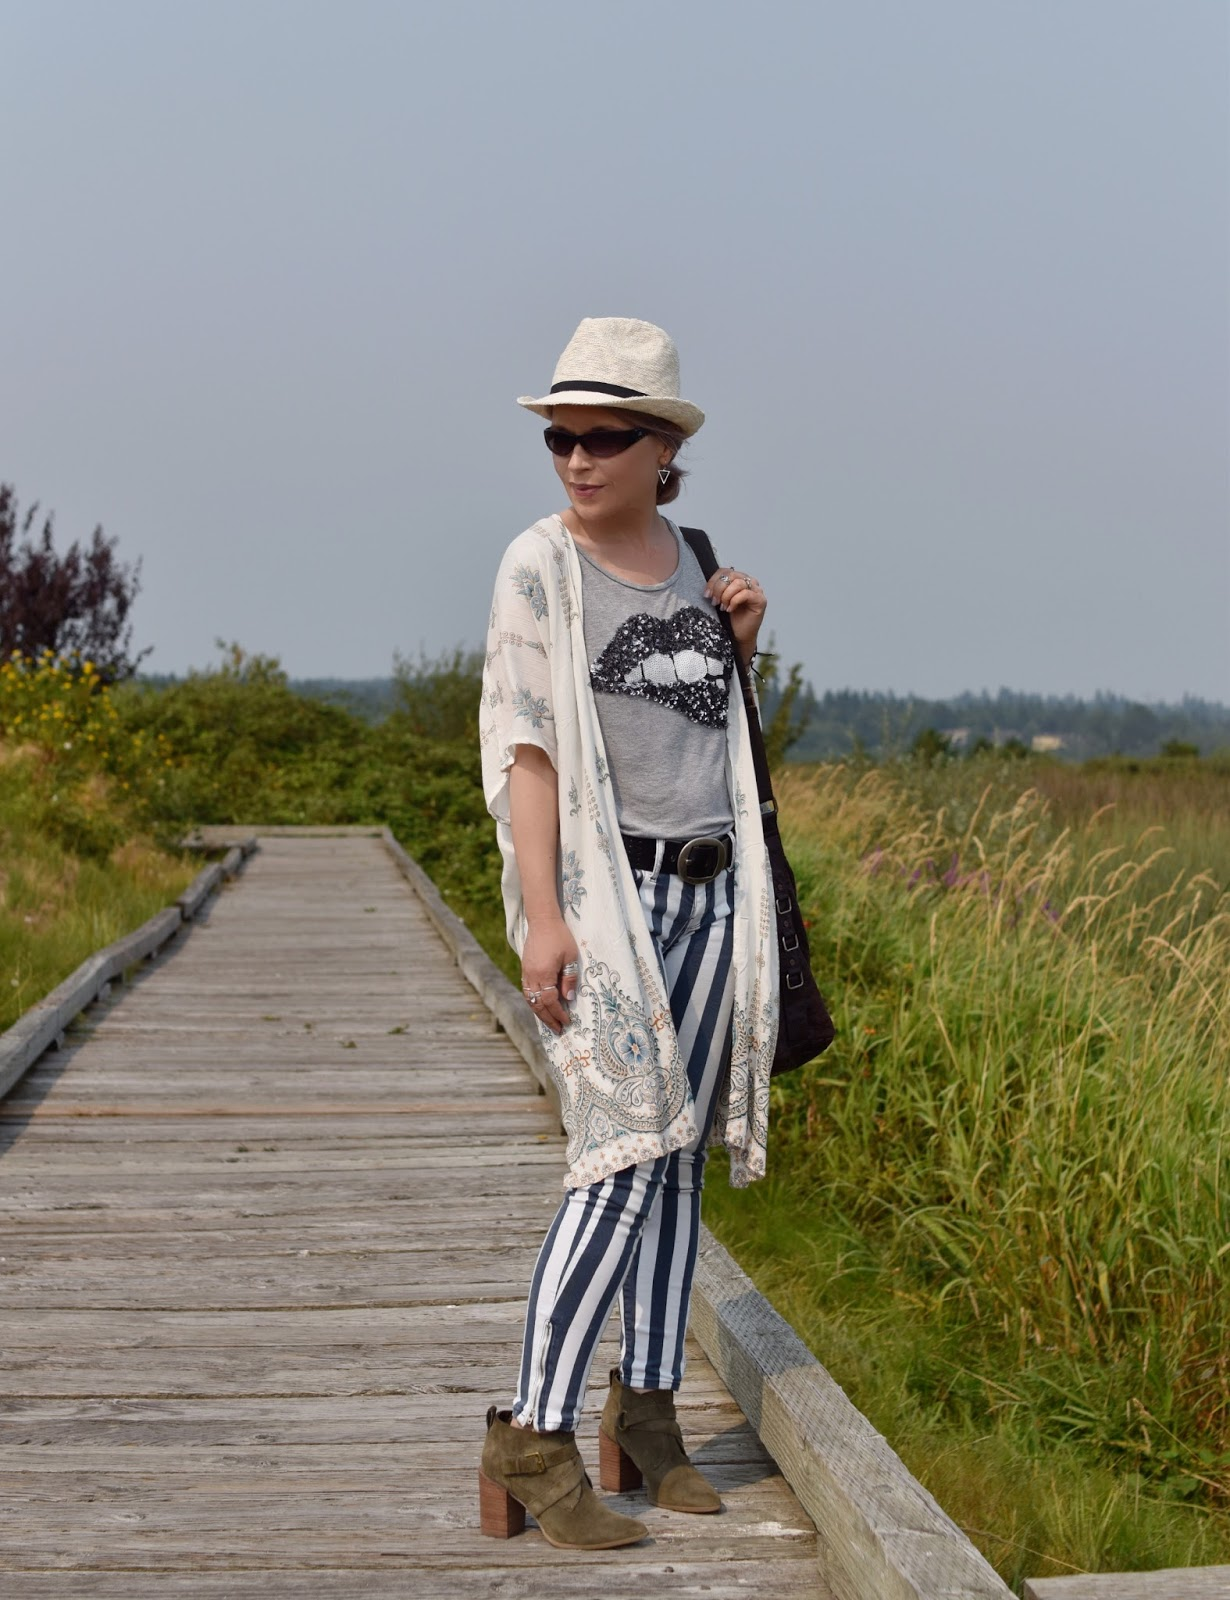 Monika Faulkner personal style inspiration - striped skinny jeans, sequinned tee, ankle boots, damask-patterned kimono, straw fedora